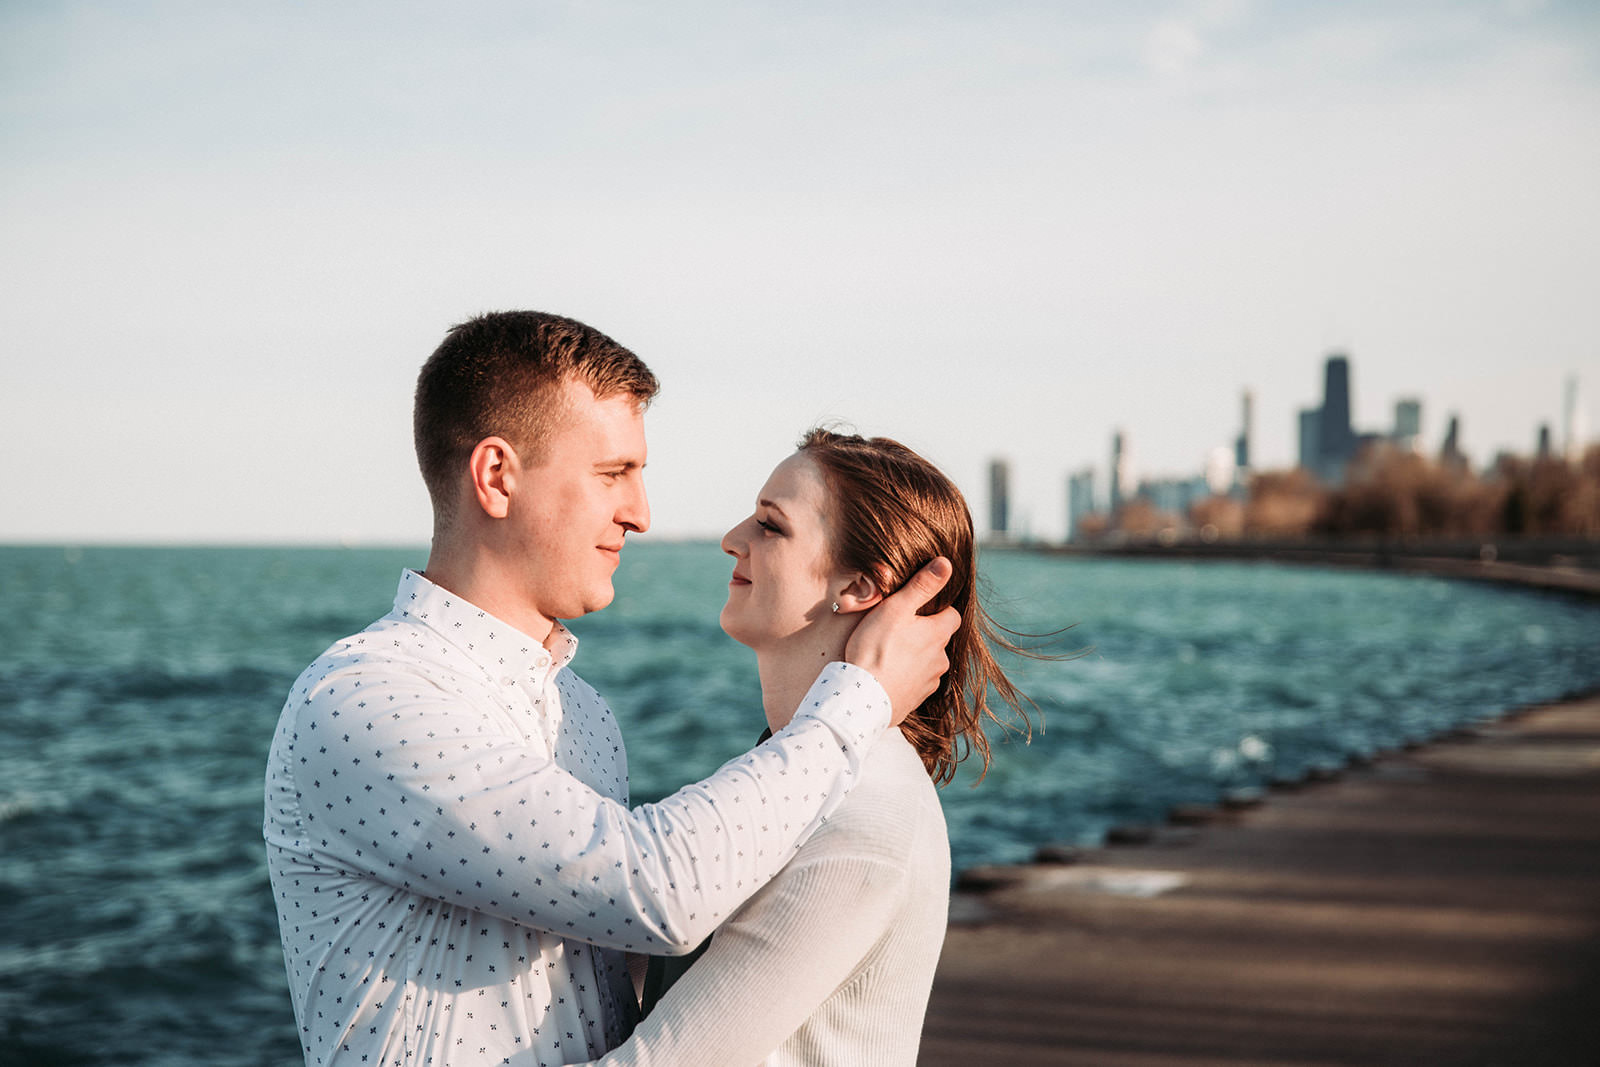 Downtown_chicago_spring_engagement_session-16.jpg